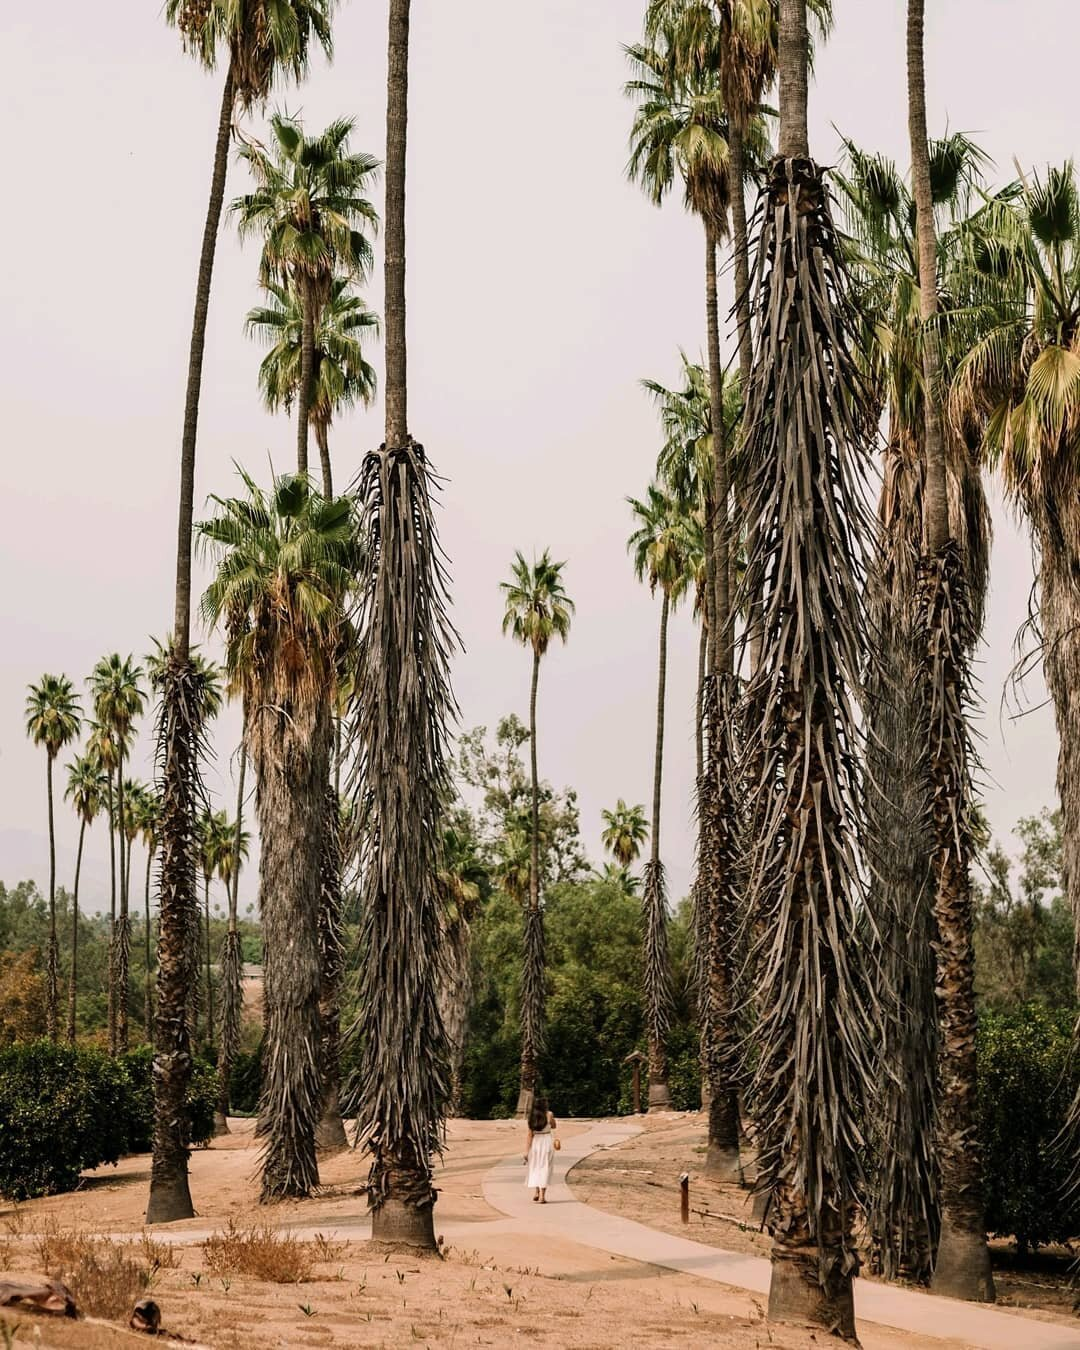 Chasing the final moments of summer 🌴⠀ ⠀ On our way back home from Joshua Tree, we discovered this place (some people choose gas stations to stop at for bathroom breaks, I choose state parks...?) This gorgeous spot in Riverside is the California Citrus State Historic Park, and you can find rows and rows of citrus trees, palms, and flowers everywhere you look! Oh, and you can find bathrooms here. So that was great, too 😉 we ended up having the entire park to ourselves, which was insane. #OffDutyinCalifornia ⠀ ⠀ What are you up to this weekend?